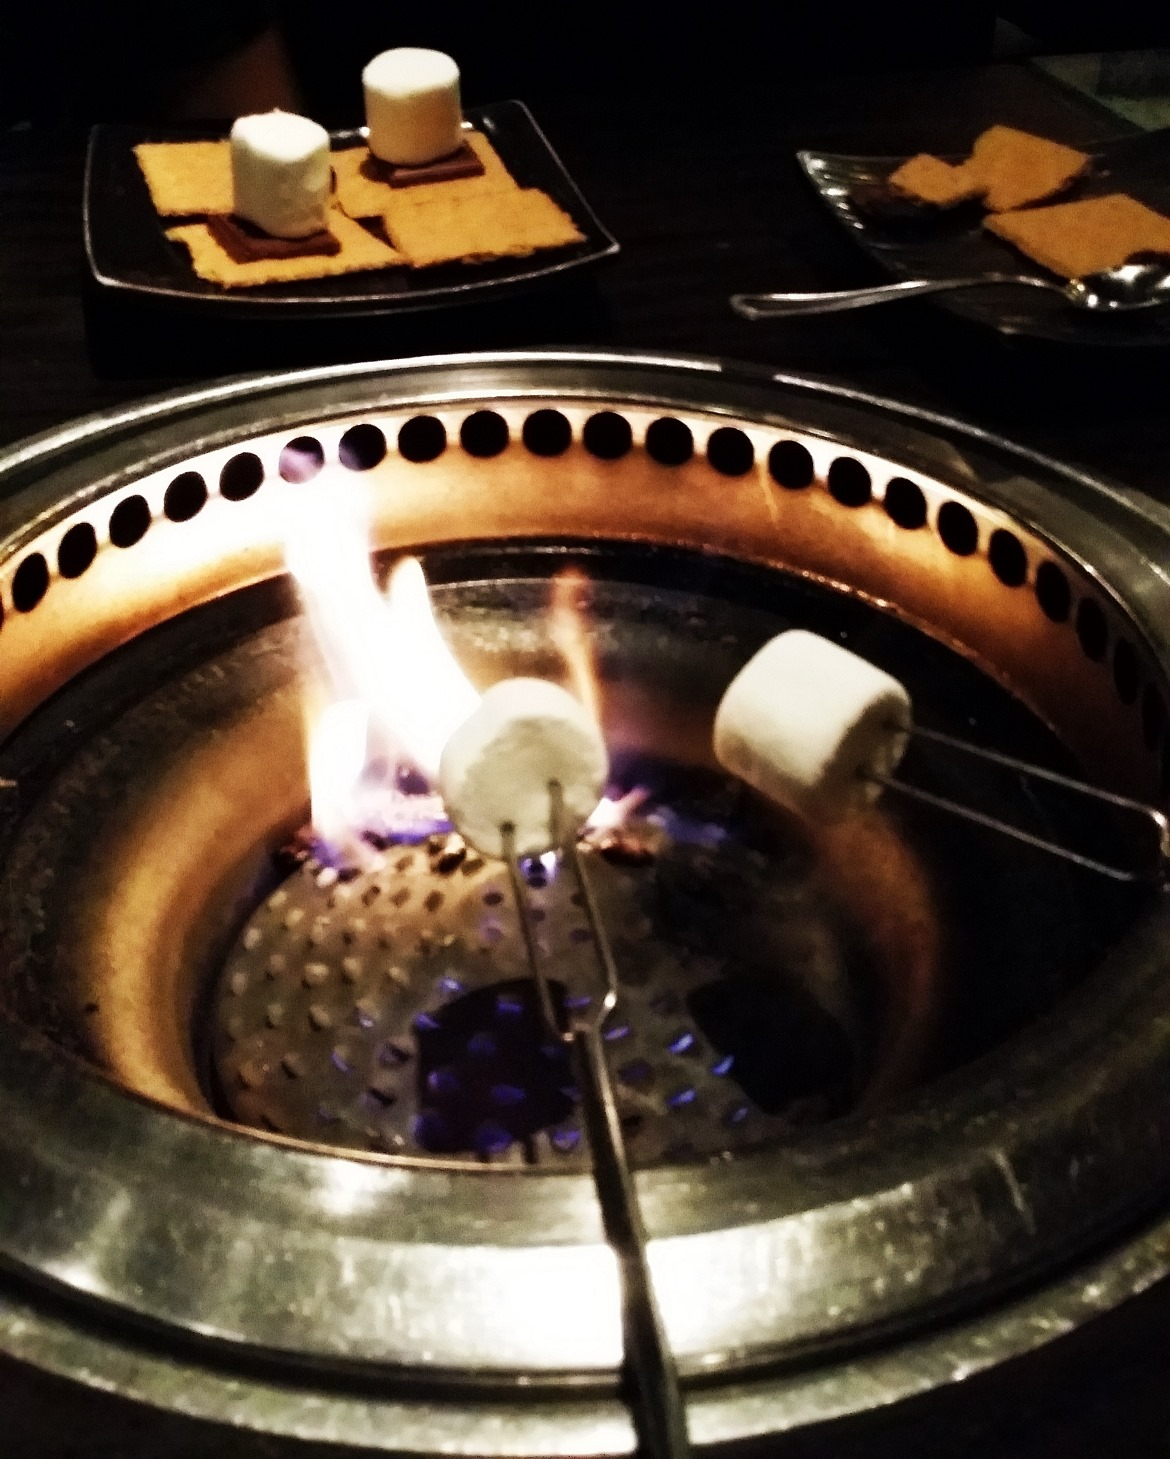 Burning smores - New York New York, travel blog by BeckyBecky Blogs